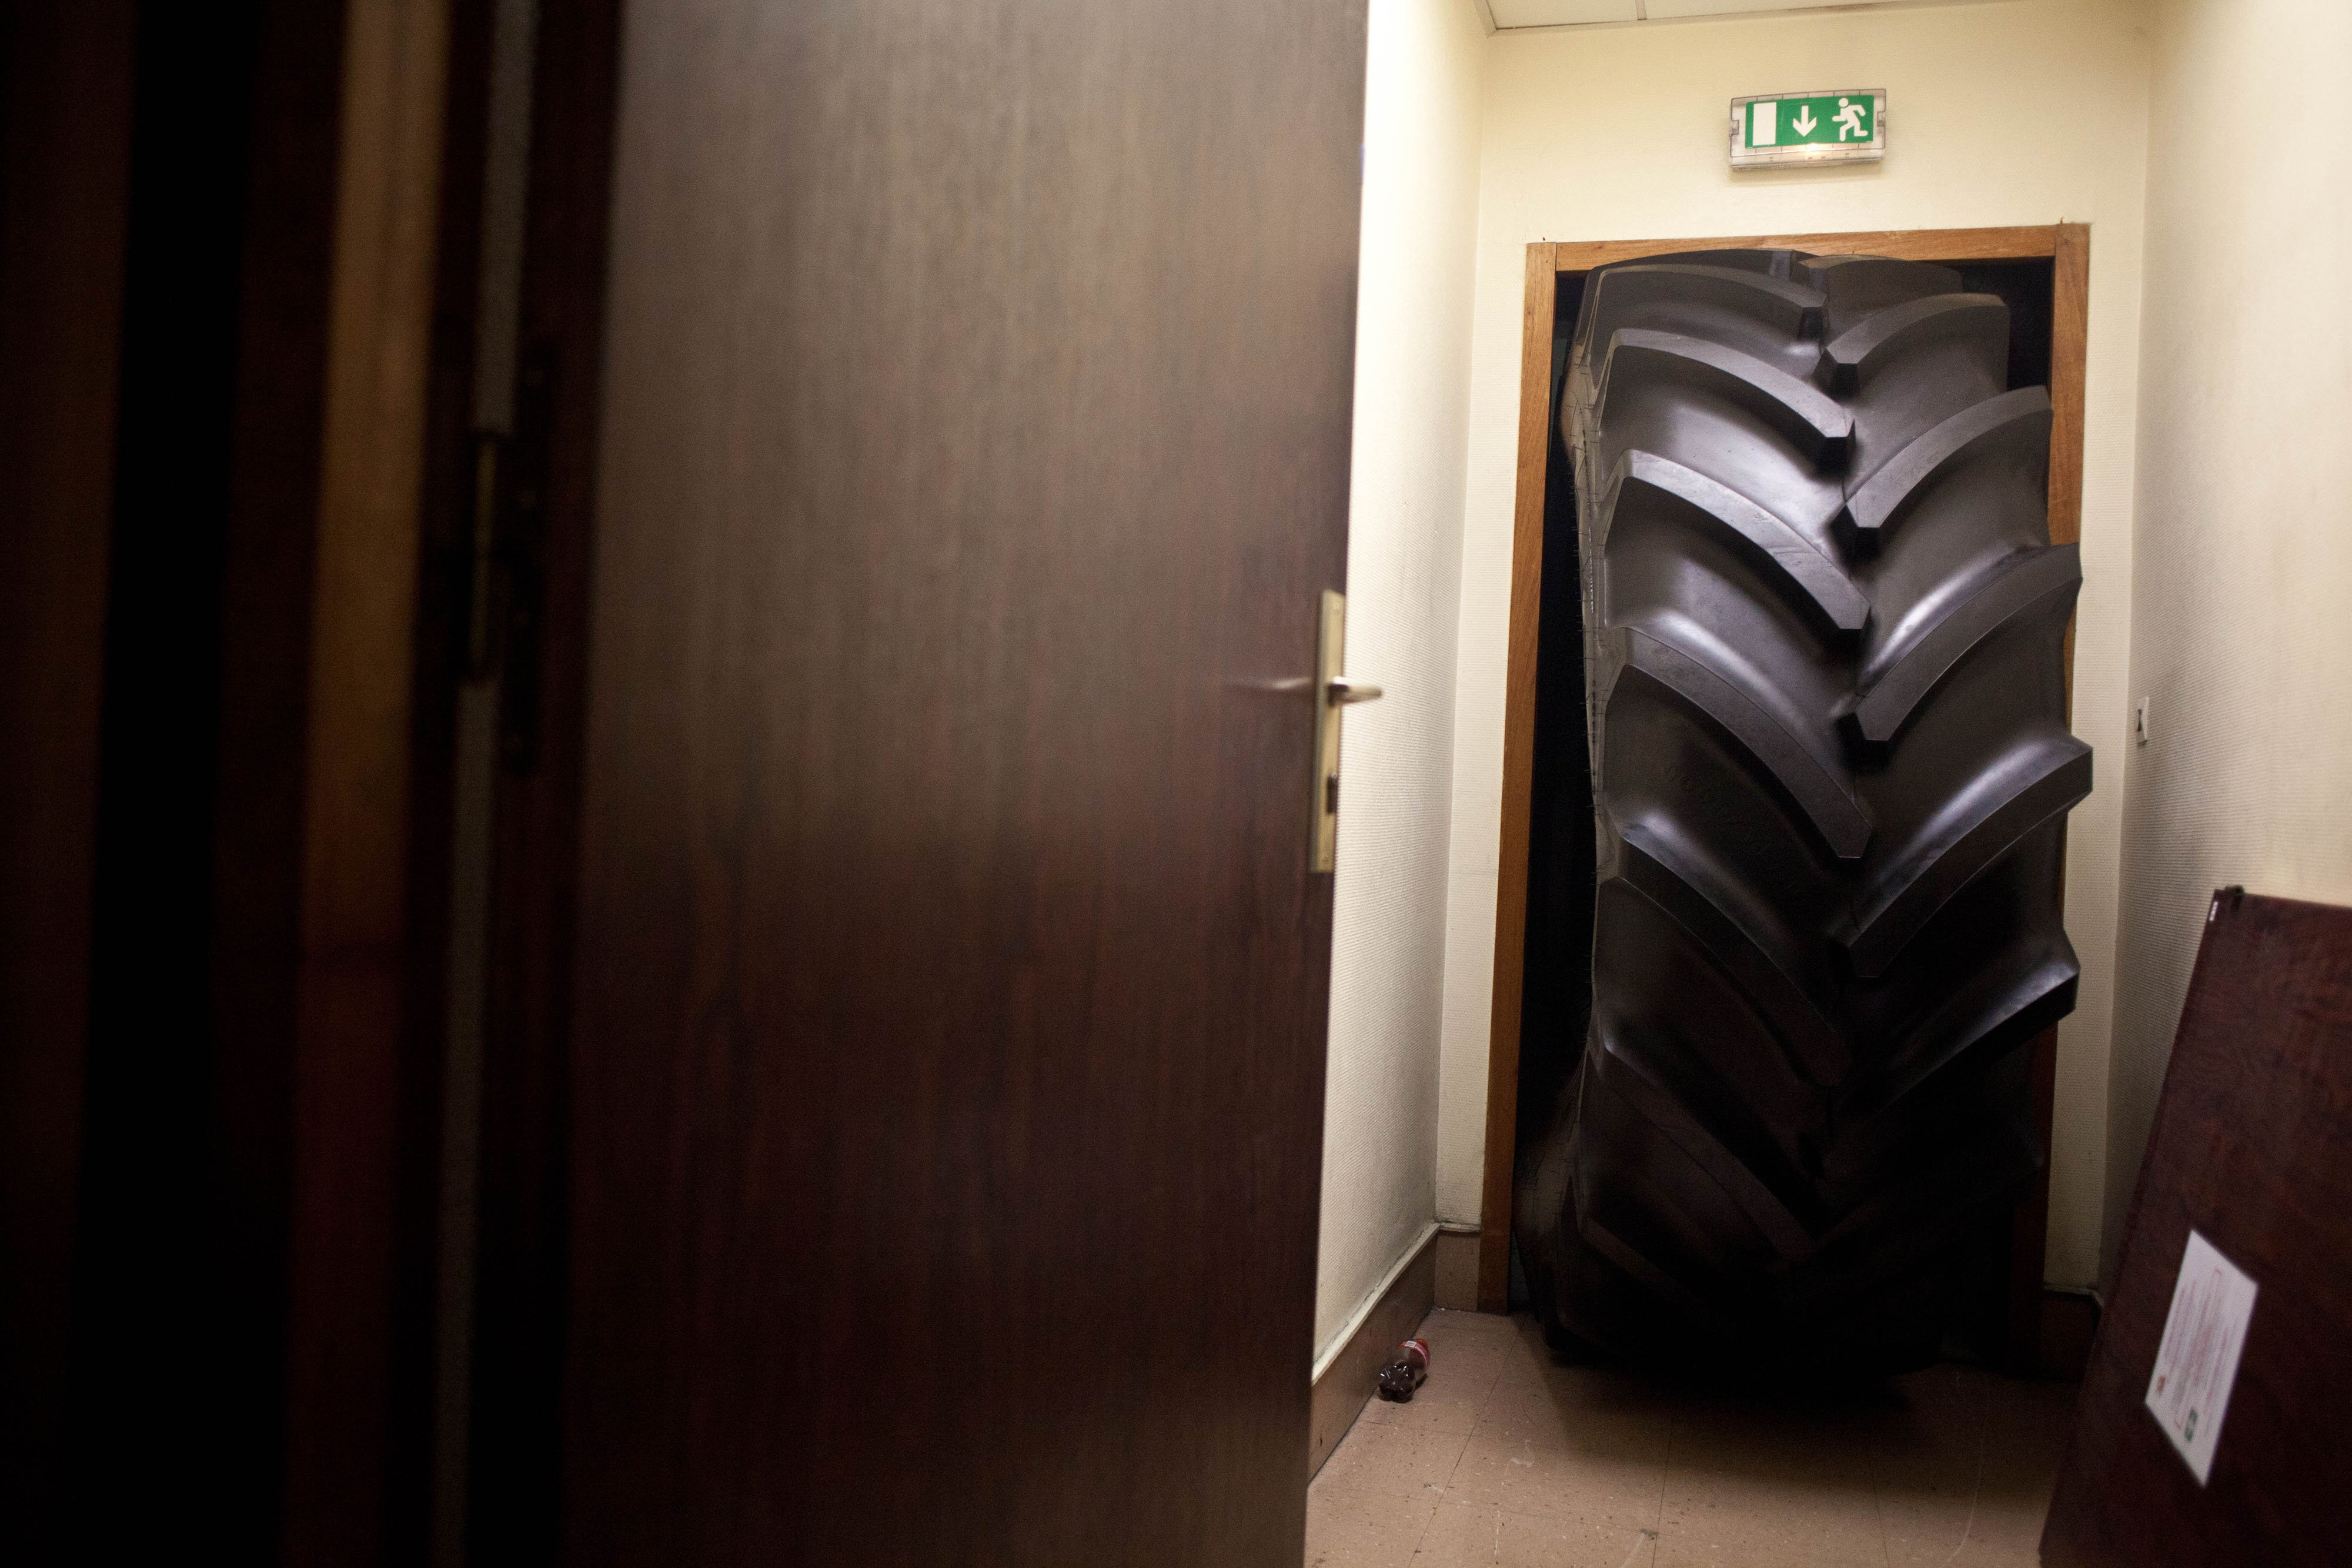 A huge tire blocks the door where Goodyear Factory production workers, Michel Dheilly and Bernard Glesser, were being detained by workers, Jan. 6, 2014, in Amiens, France.